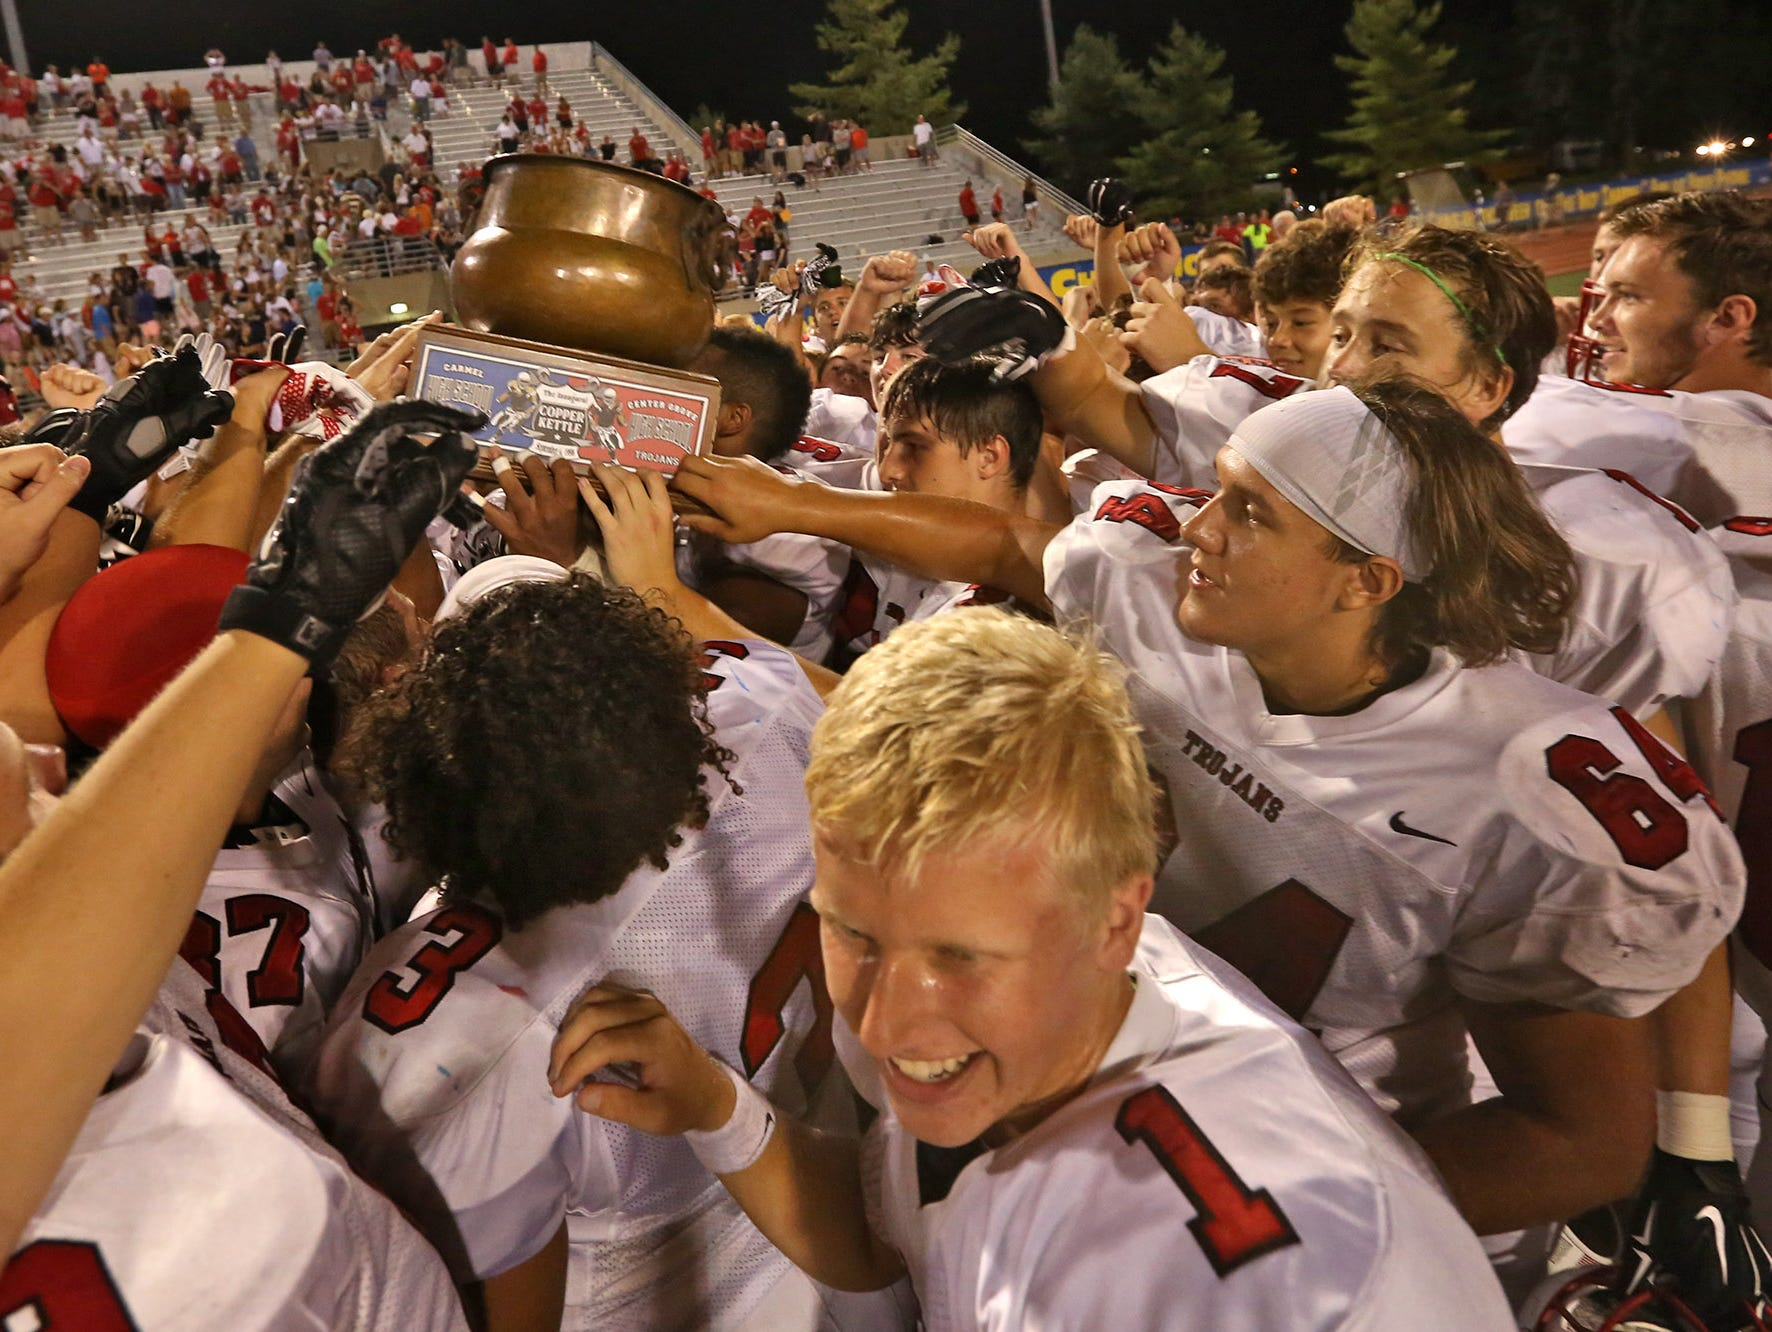 Center Grove teammates hold the Copper Kettle trophy after winning the football game at Carmel High School, Friday, September 4, 2015, 24-21.